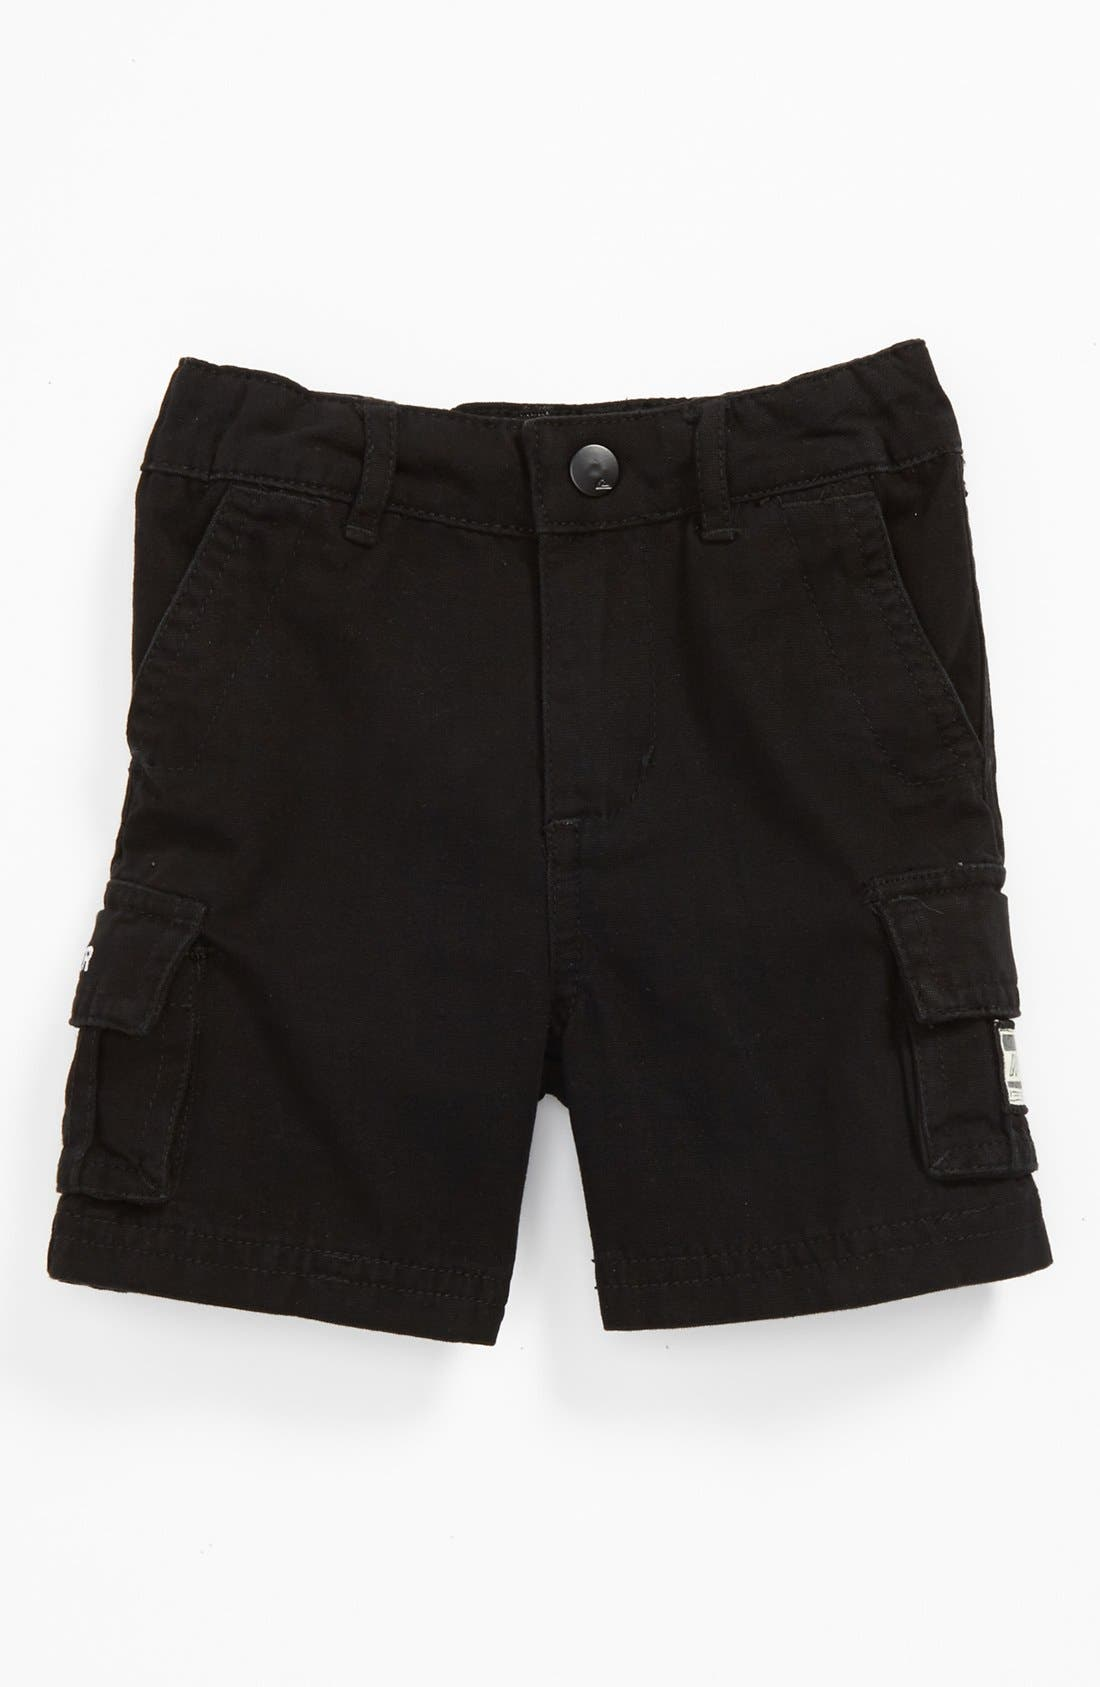 Alternate Image 1 Selected - Quiksilver Cargo Shorts (Baby)